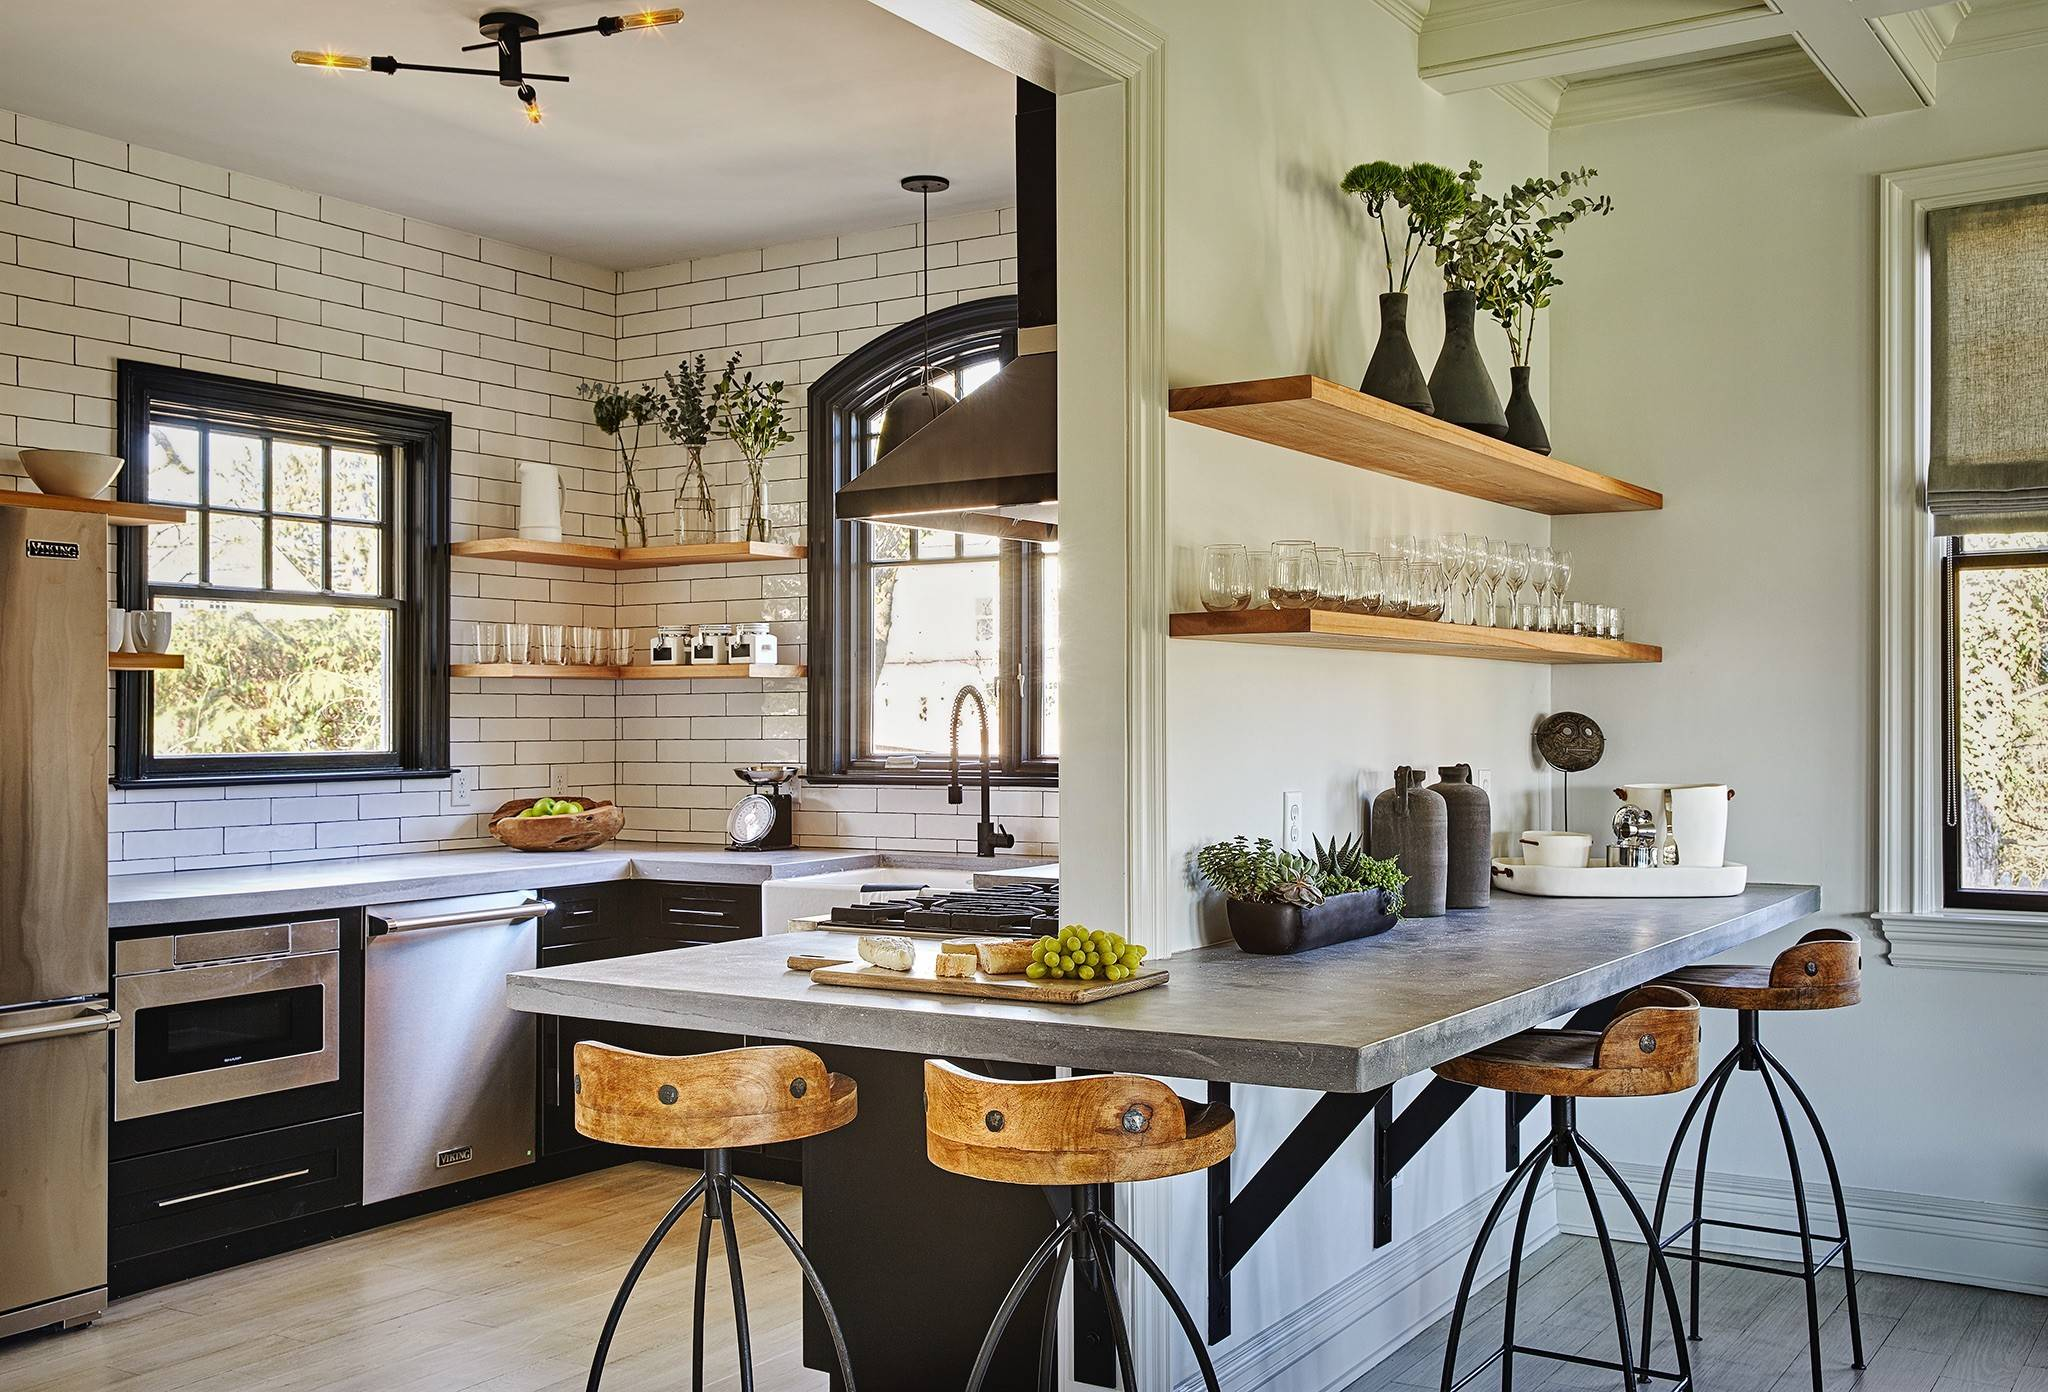 75 Beautiful Industrial Kitchen Pictures Ideas March 2021 Houzz